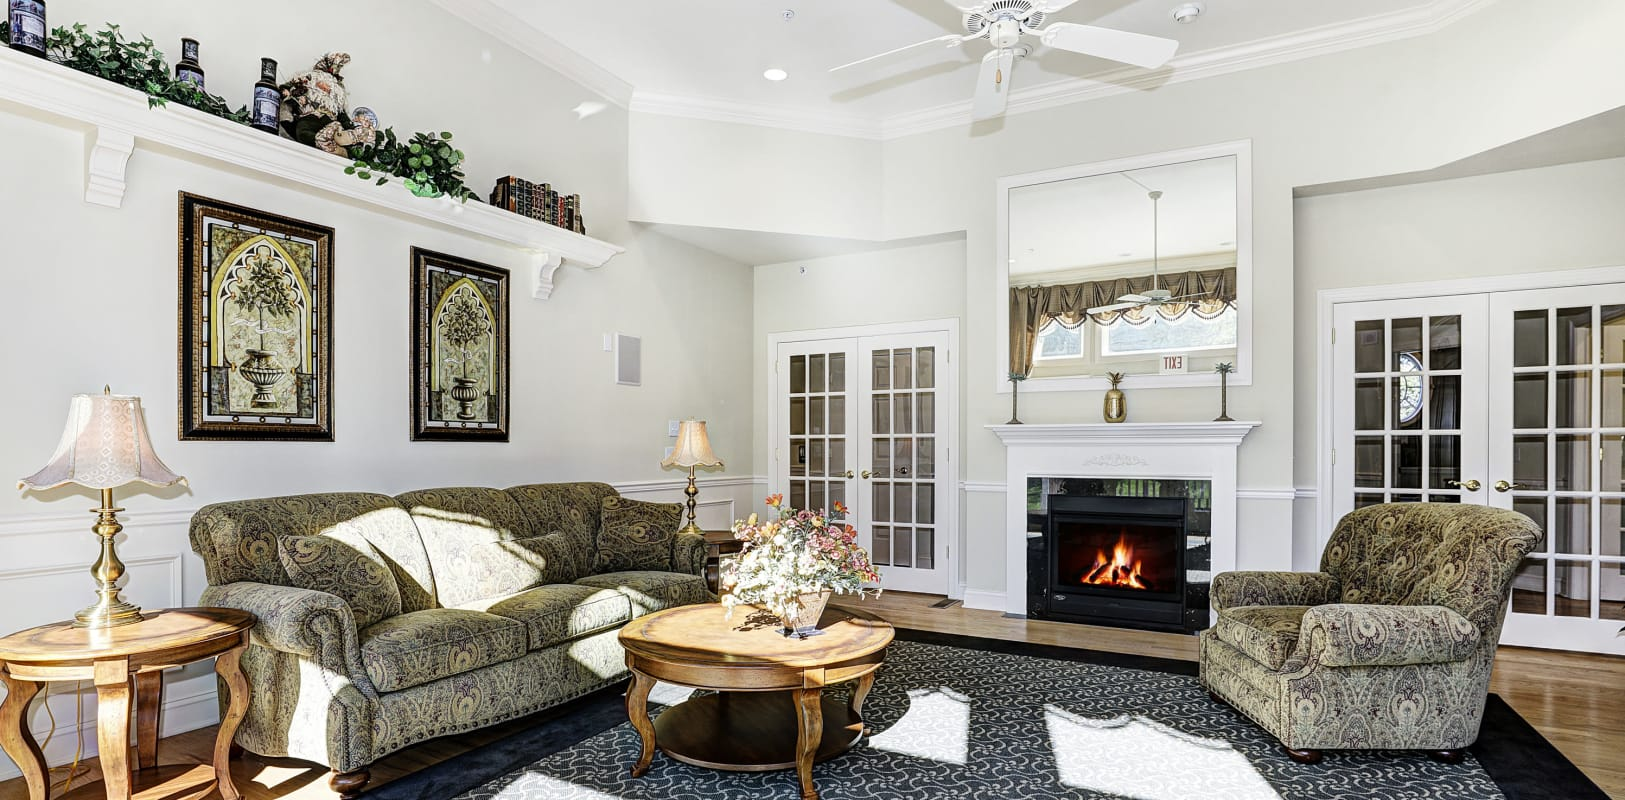 Lounge seating in front of the fireplace in the clubhouse at Hanover Glen in Bethlehem, Pennsylvania